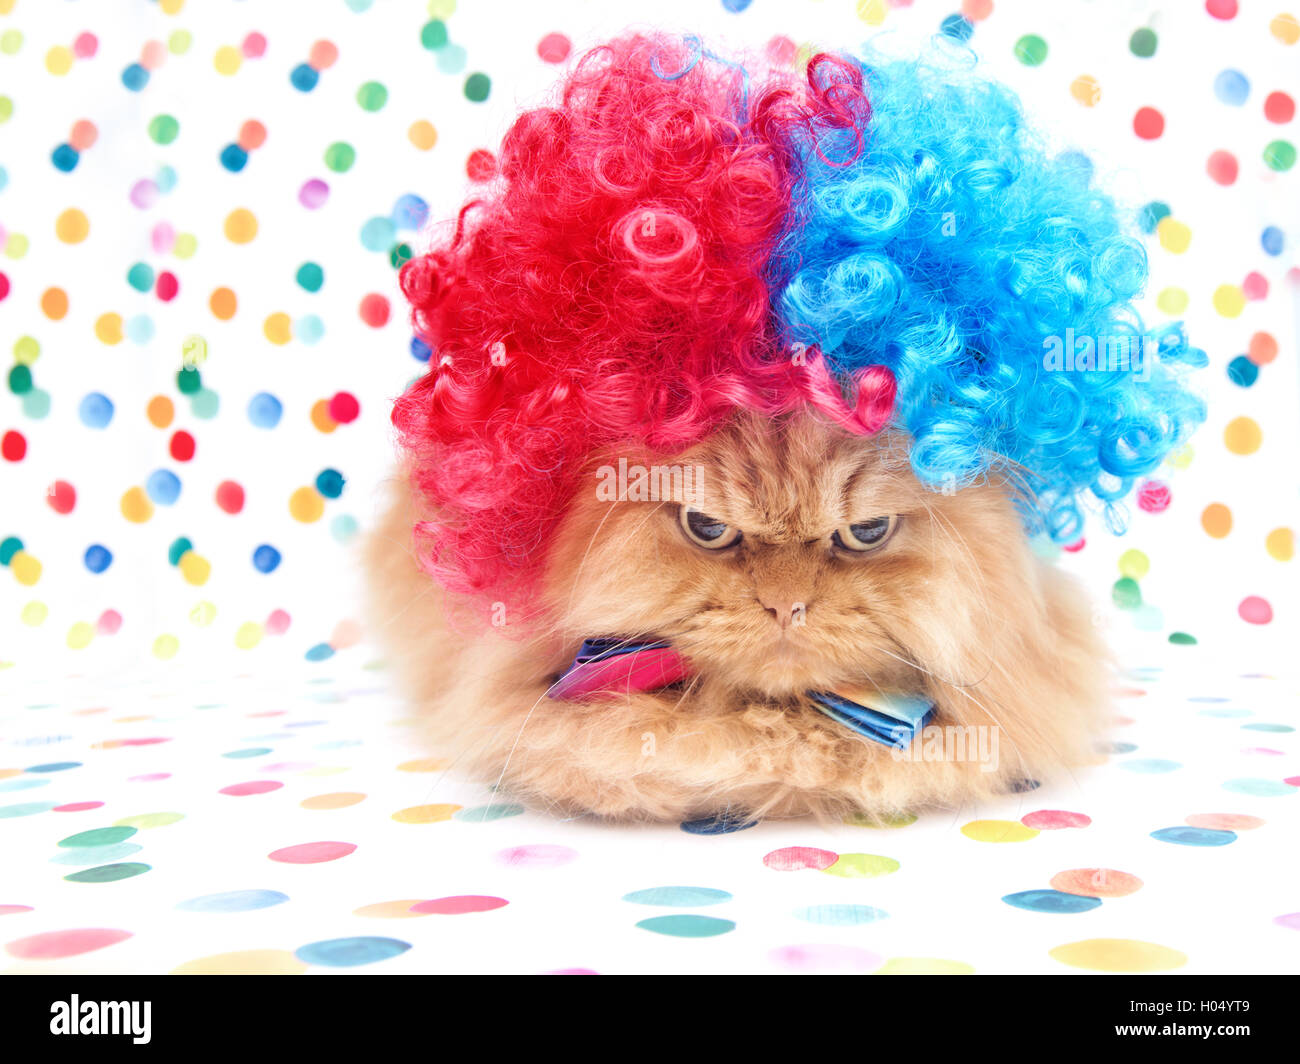 Persian Cat dressed up as a clown - Stock Image